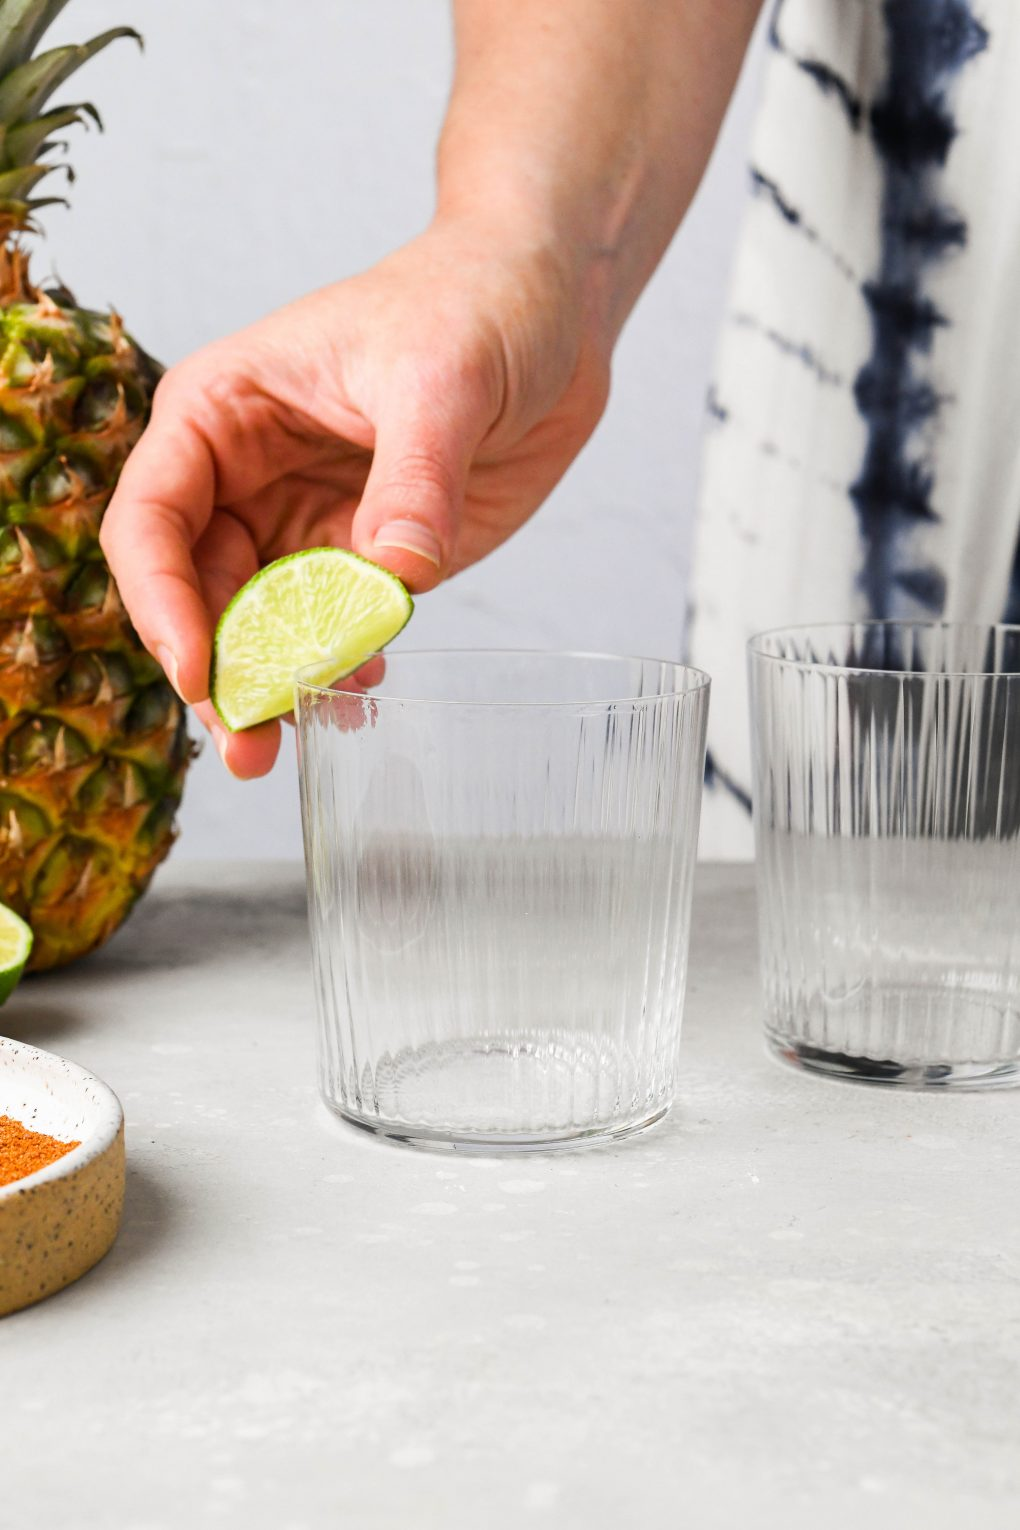 A hand rubbing a lime wedge around the rim of a glass, on a light background.